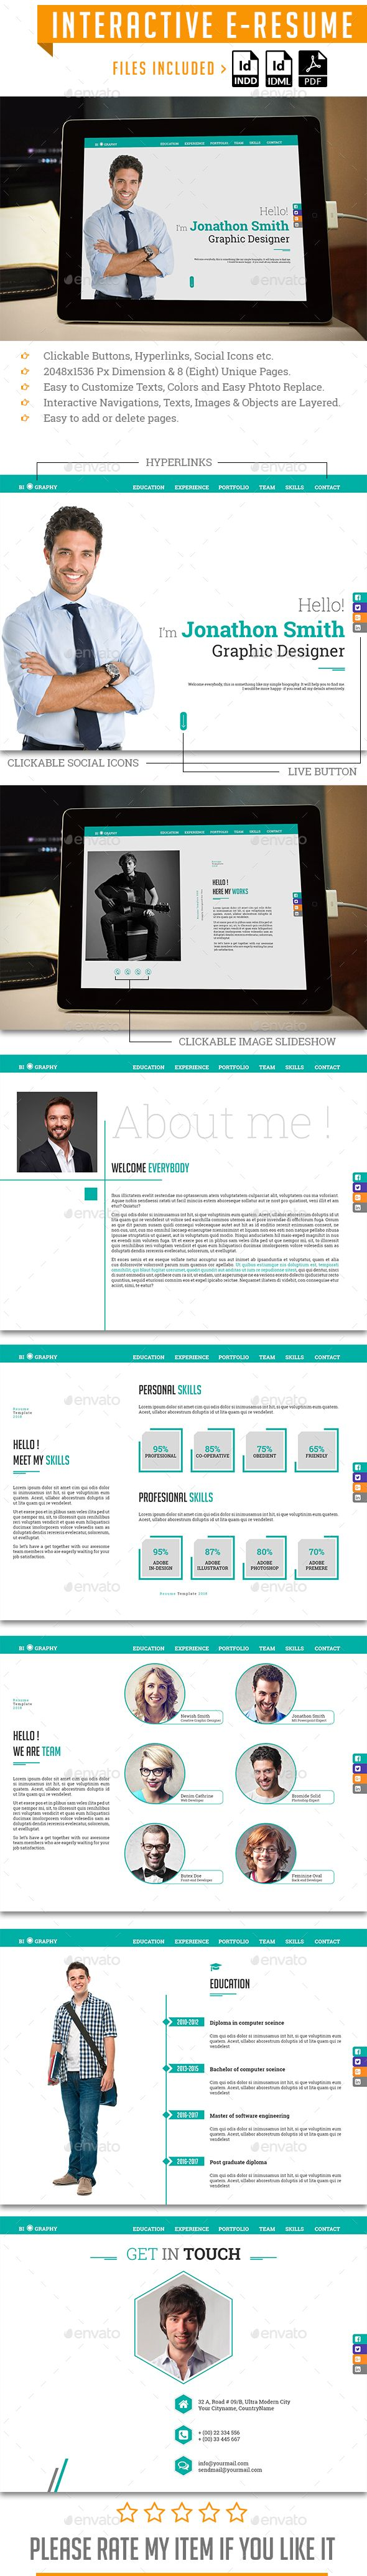 Interactive EResume Indesign resume template, Ebook